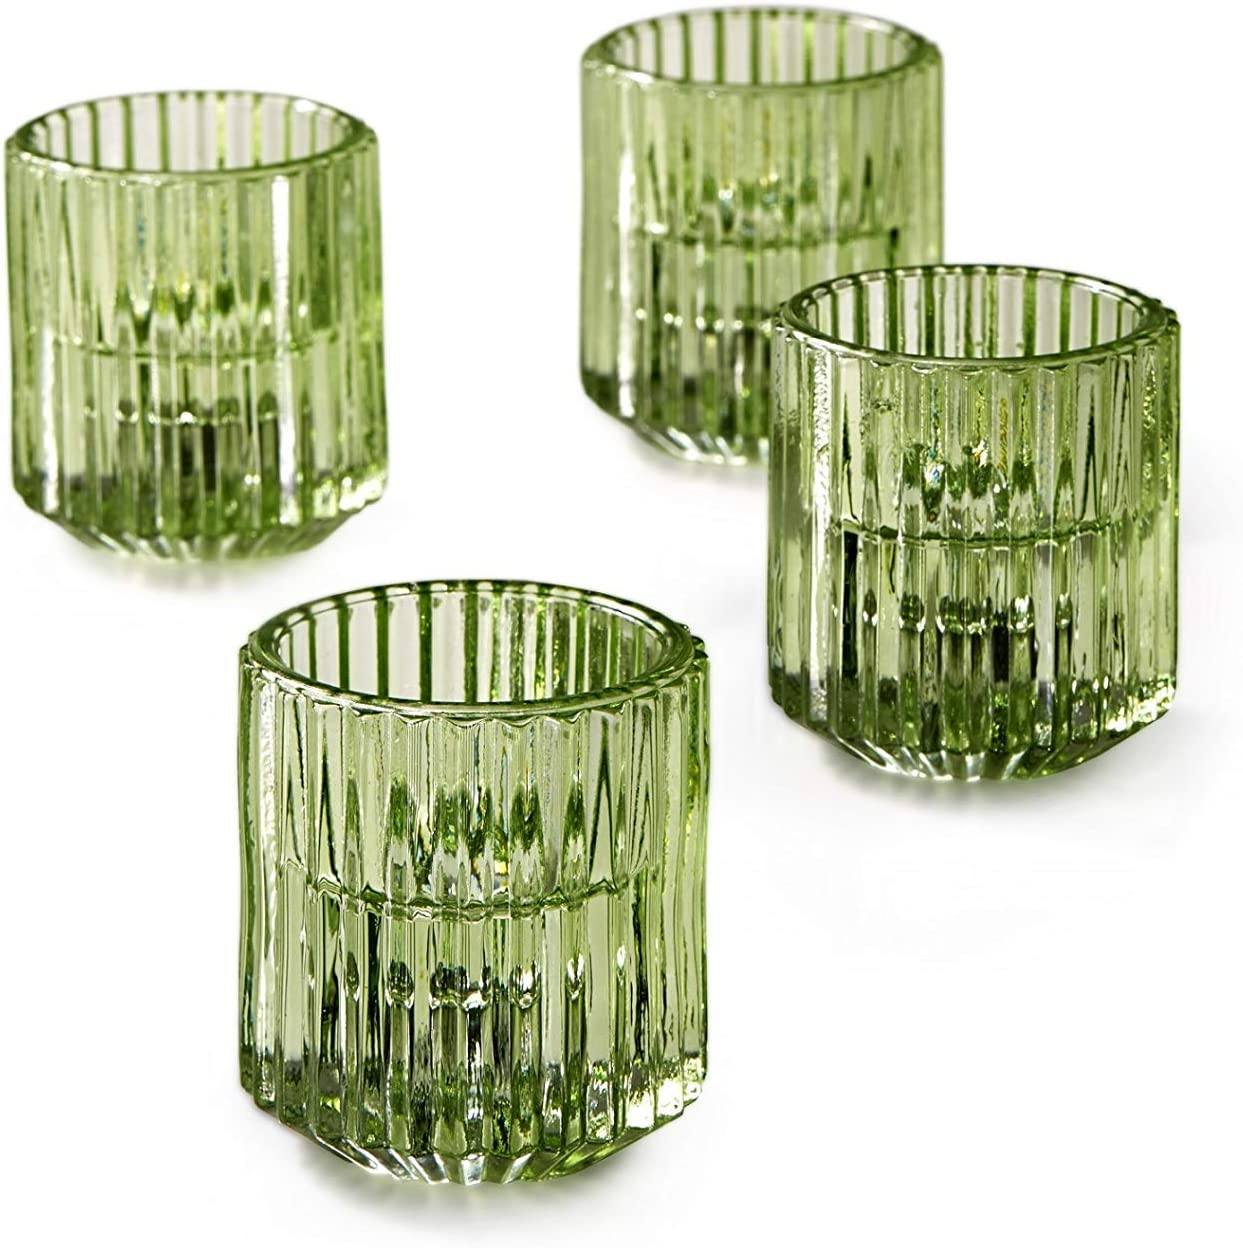 Serene Spaces Living Set of 4 Green Ribbed Glass Votive Holders, Perfect for Weddings and Home Décor, Measures 2.25